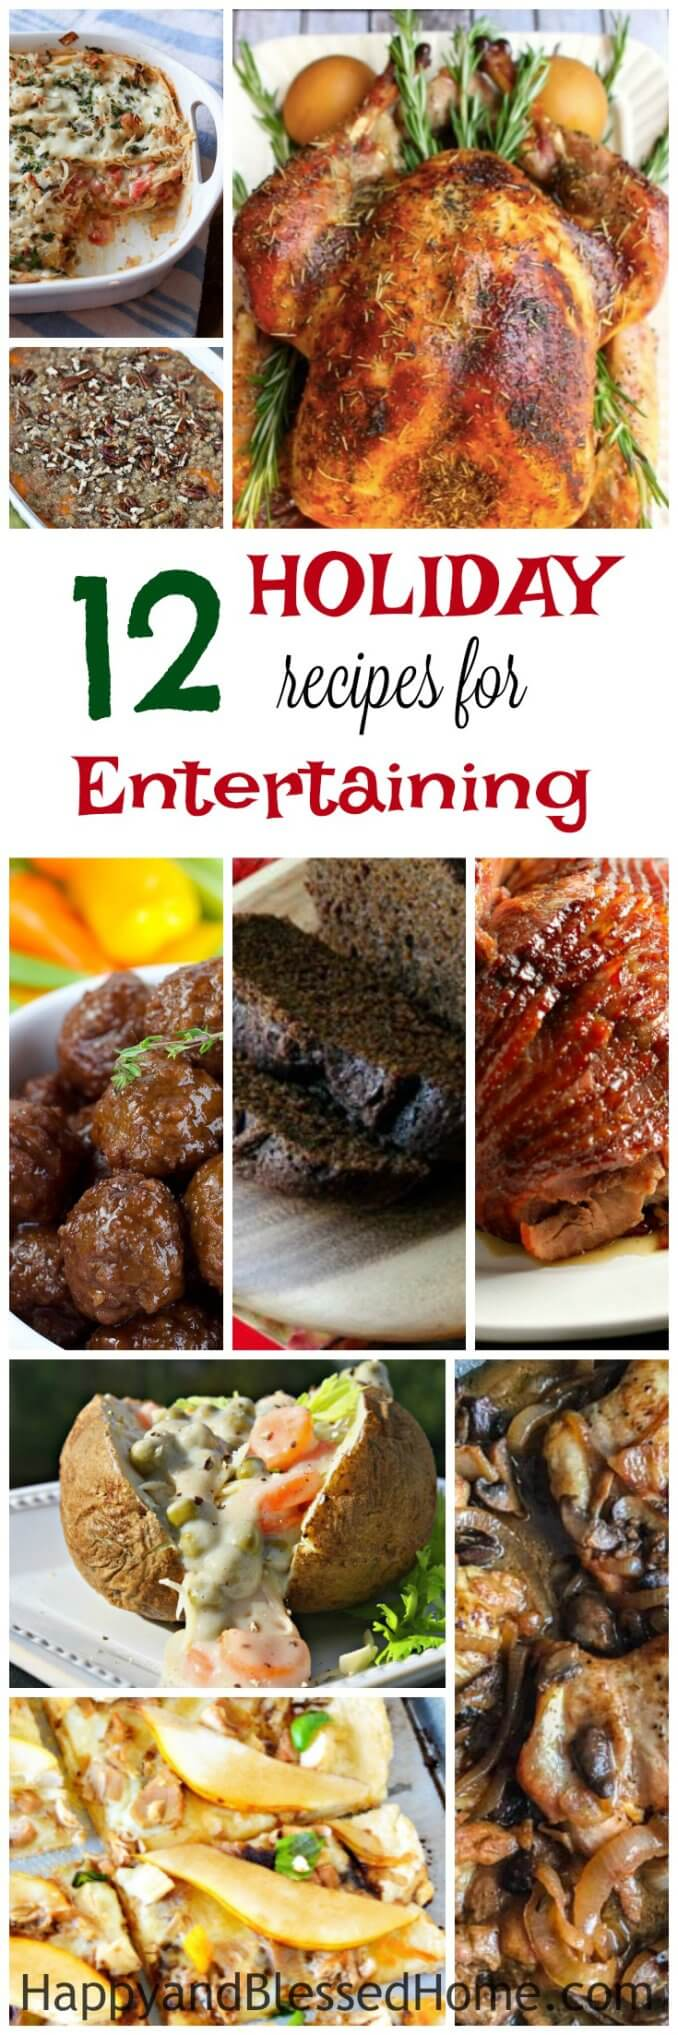 12 Holiday Recipes for Entertaining